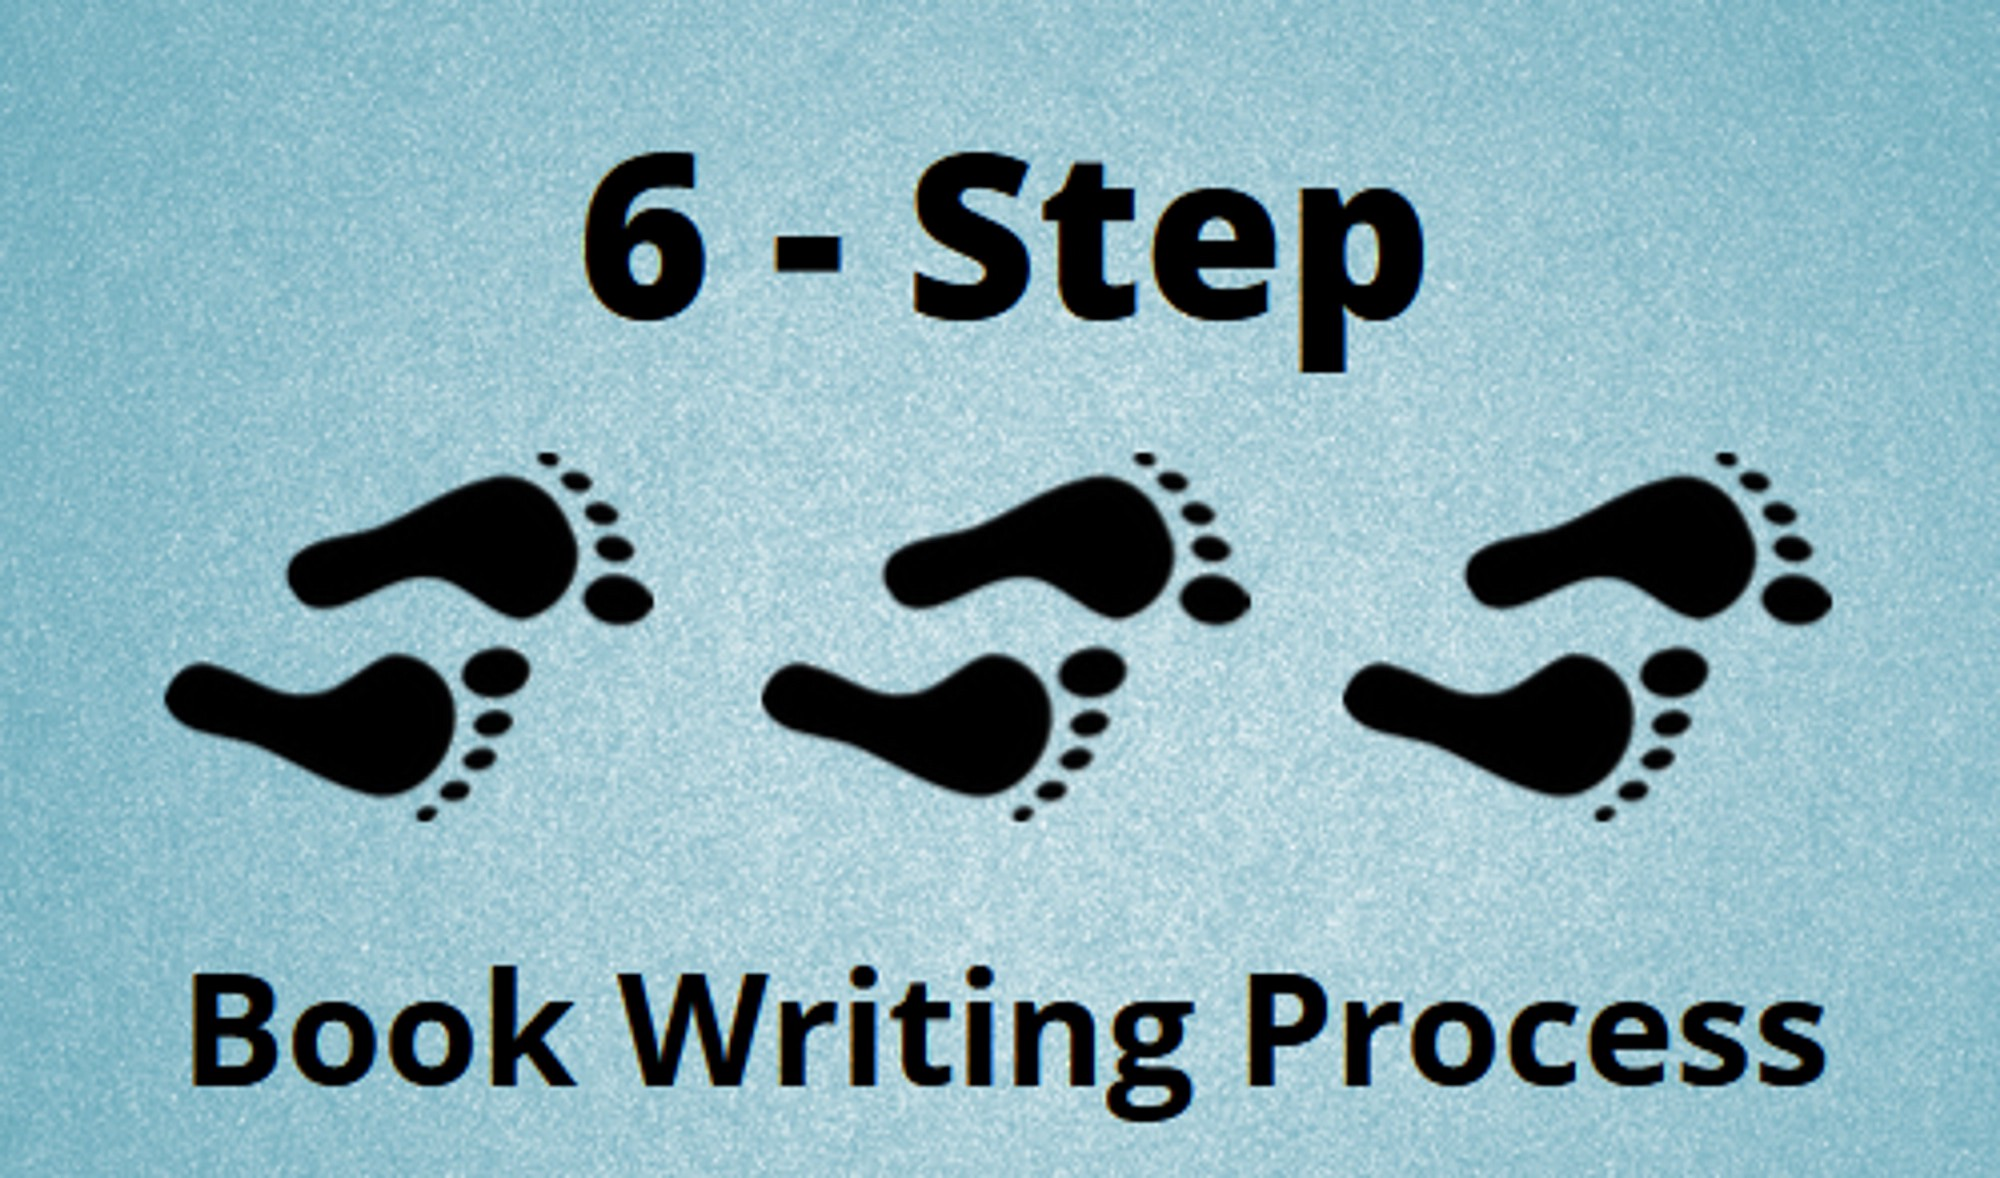 6 step book writing process—text and footprints